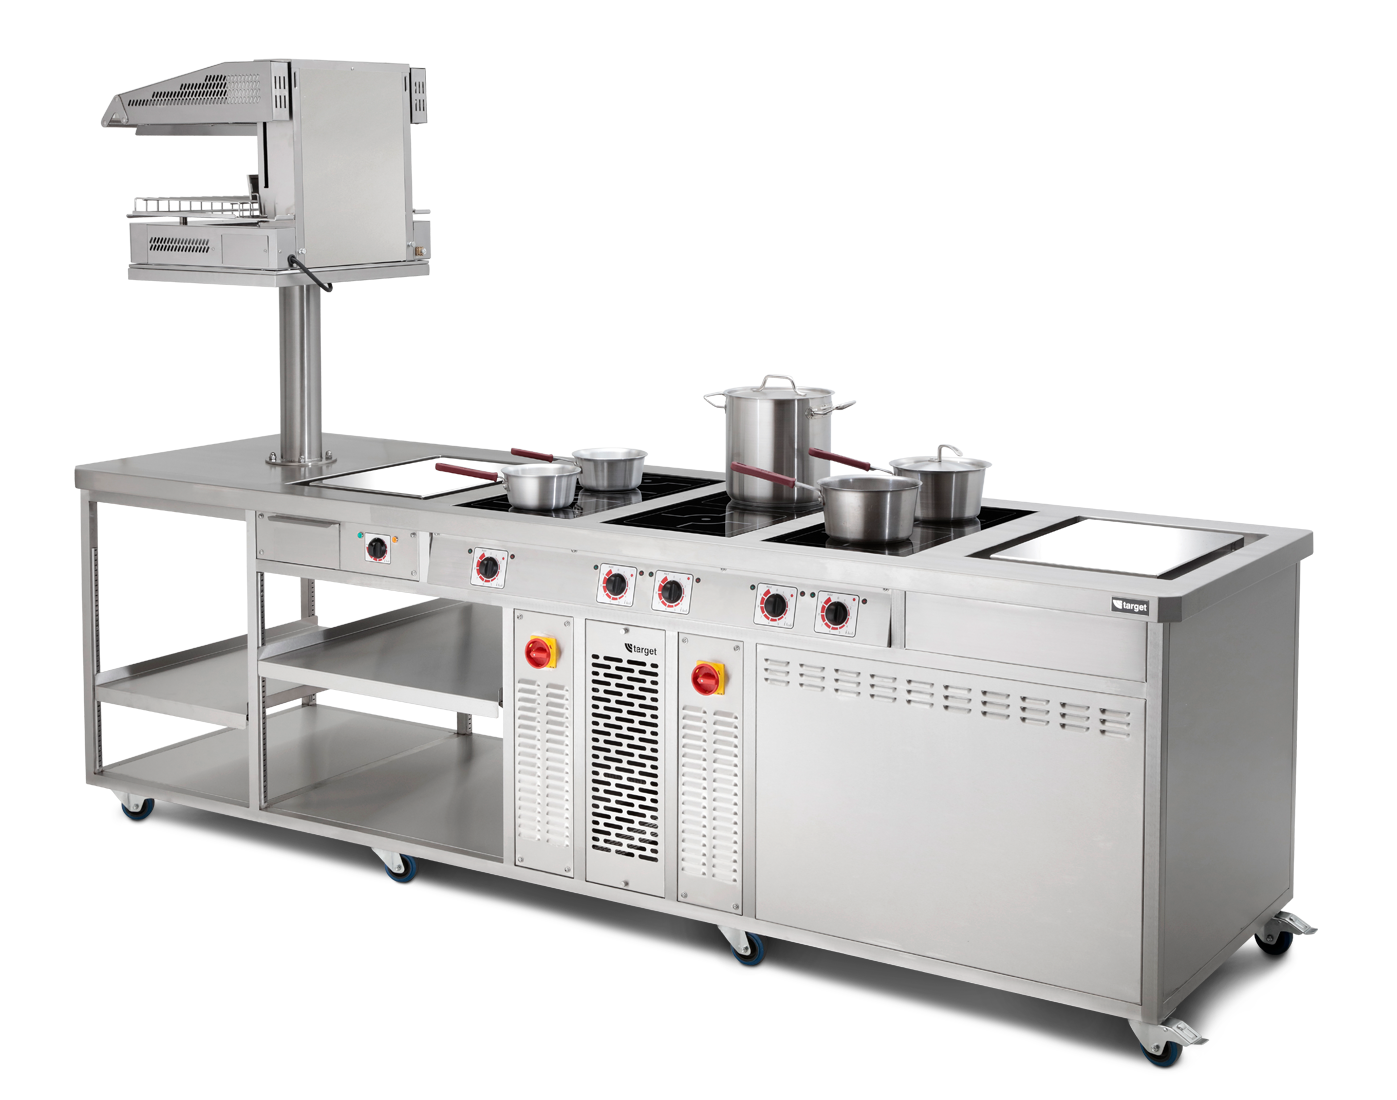 commercial-induction-range-island-suite-oven-under-electric-french-plancha.png